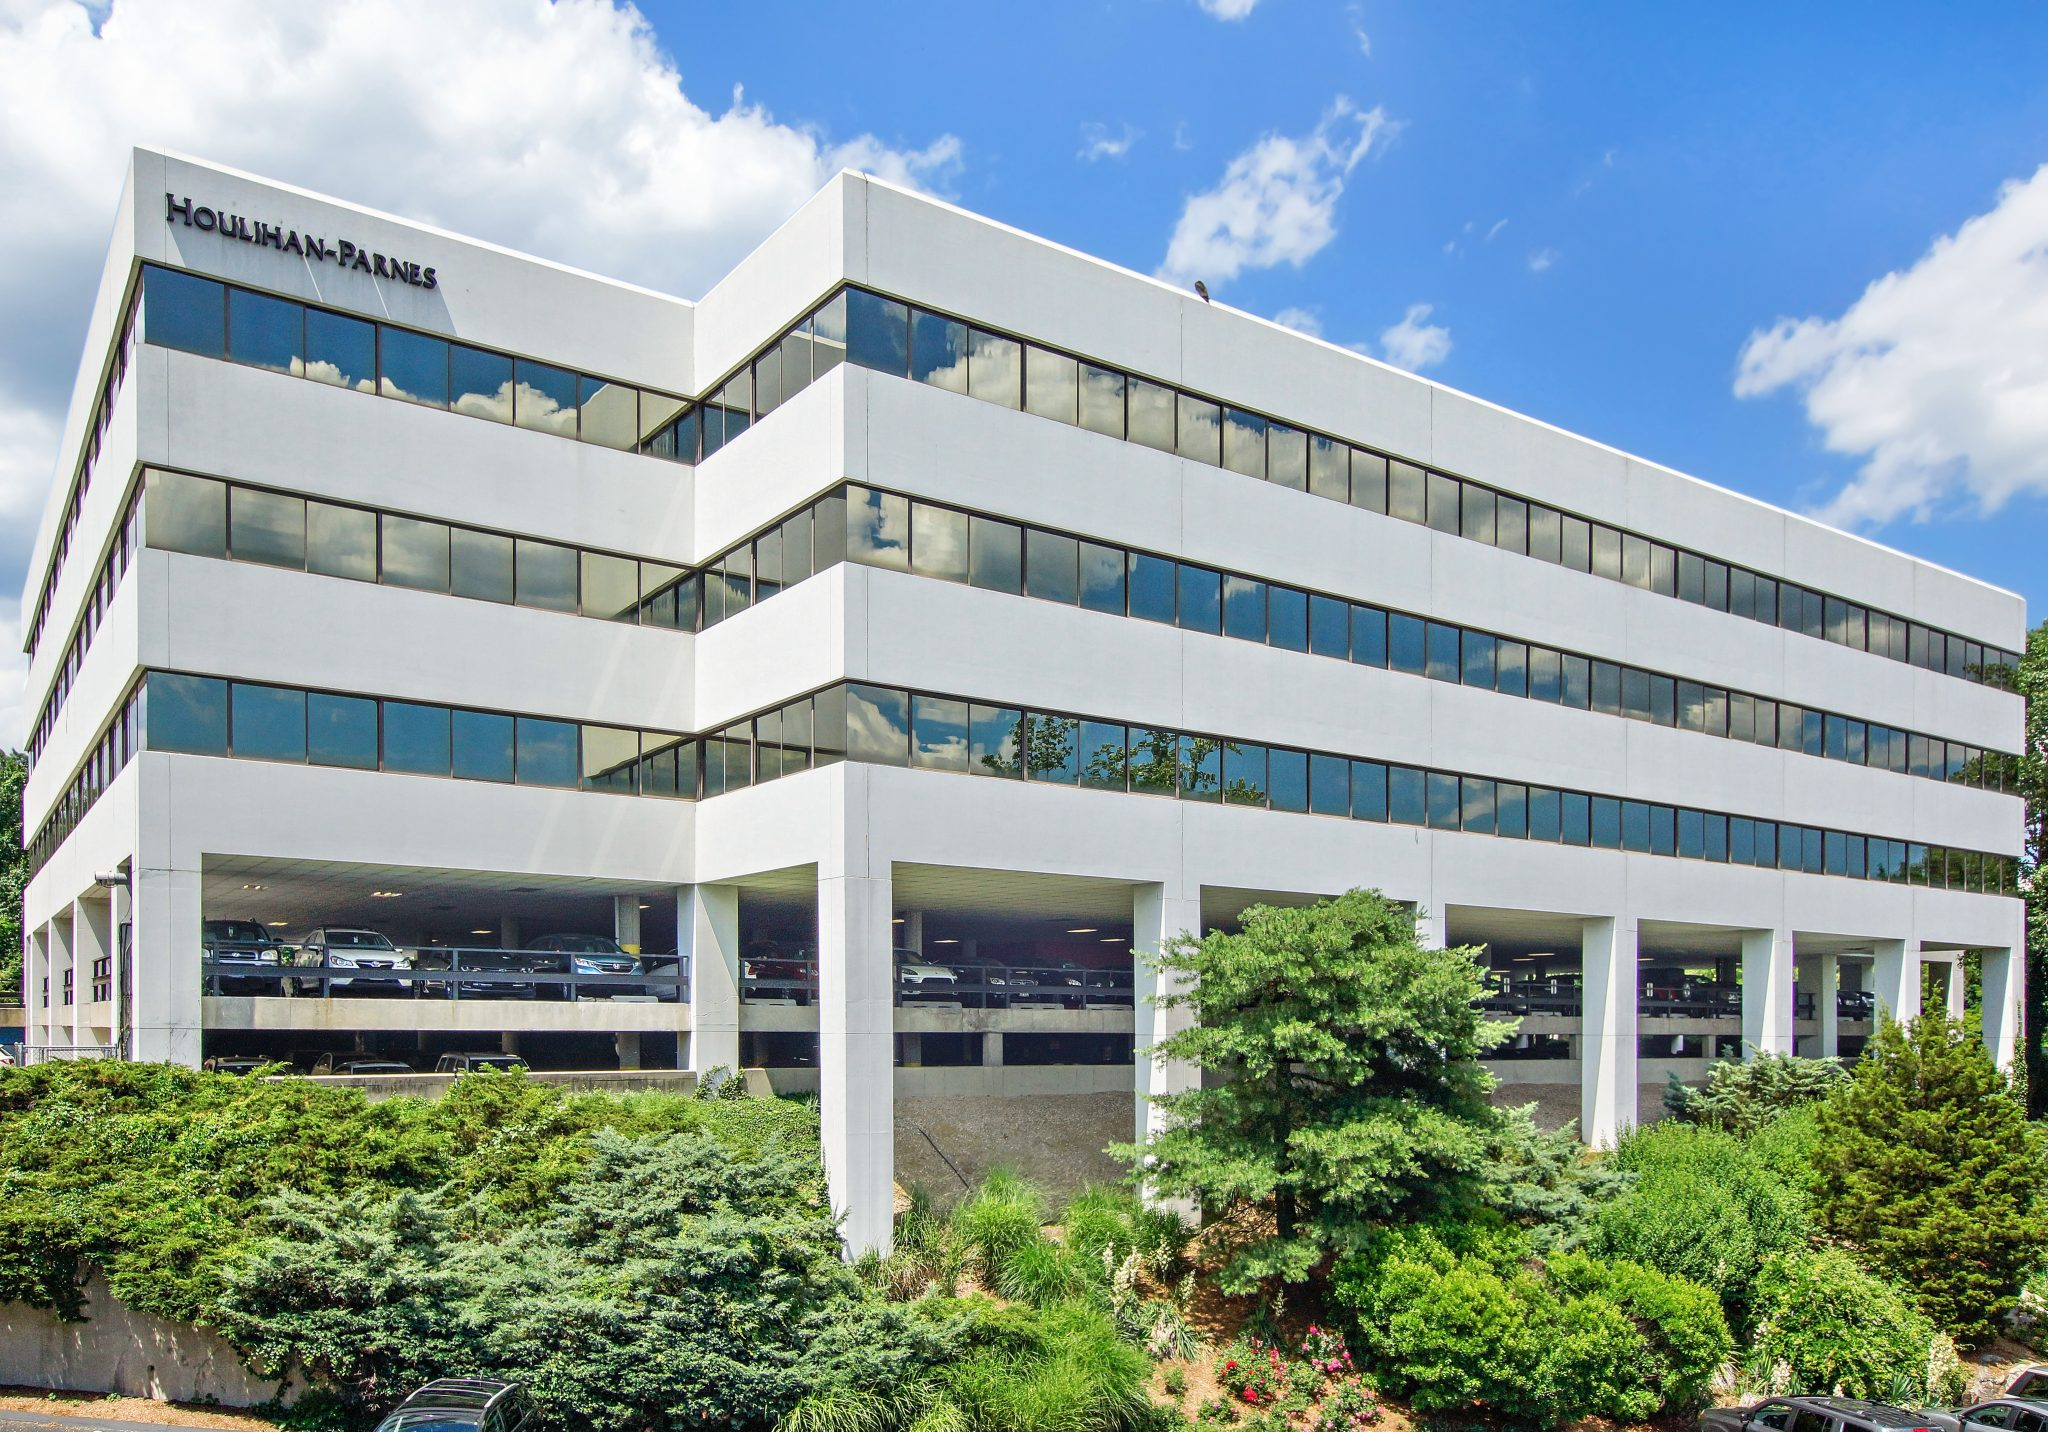 4 West Red Oak Lane – White Plains, NY 10604 – 6,280 sq. ft.